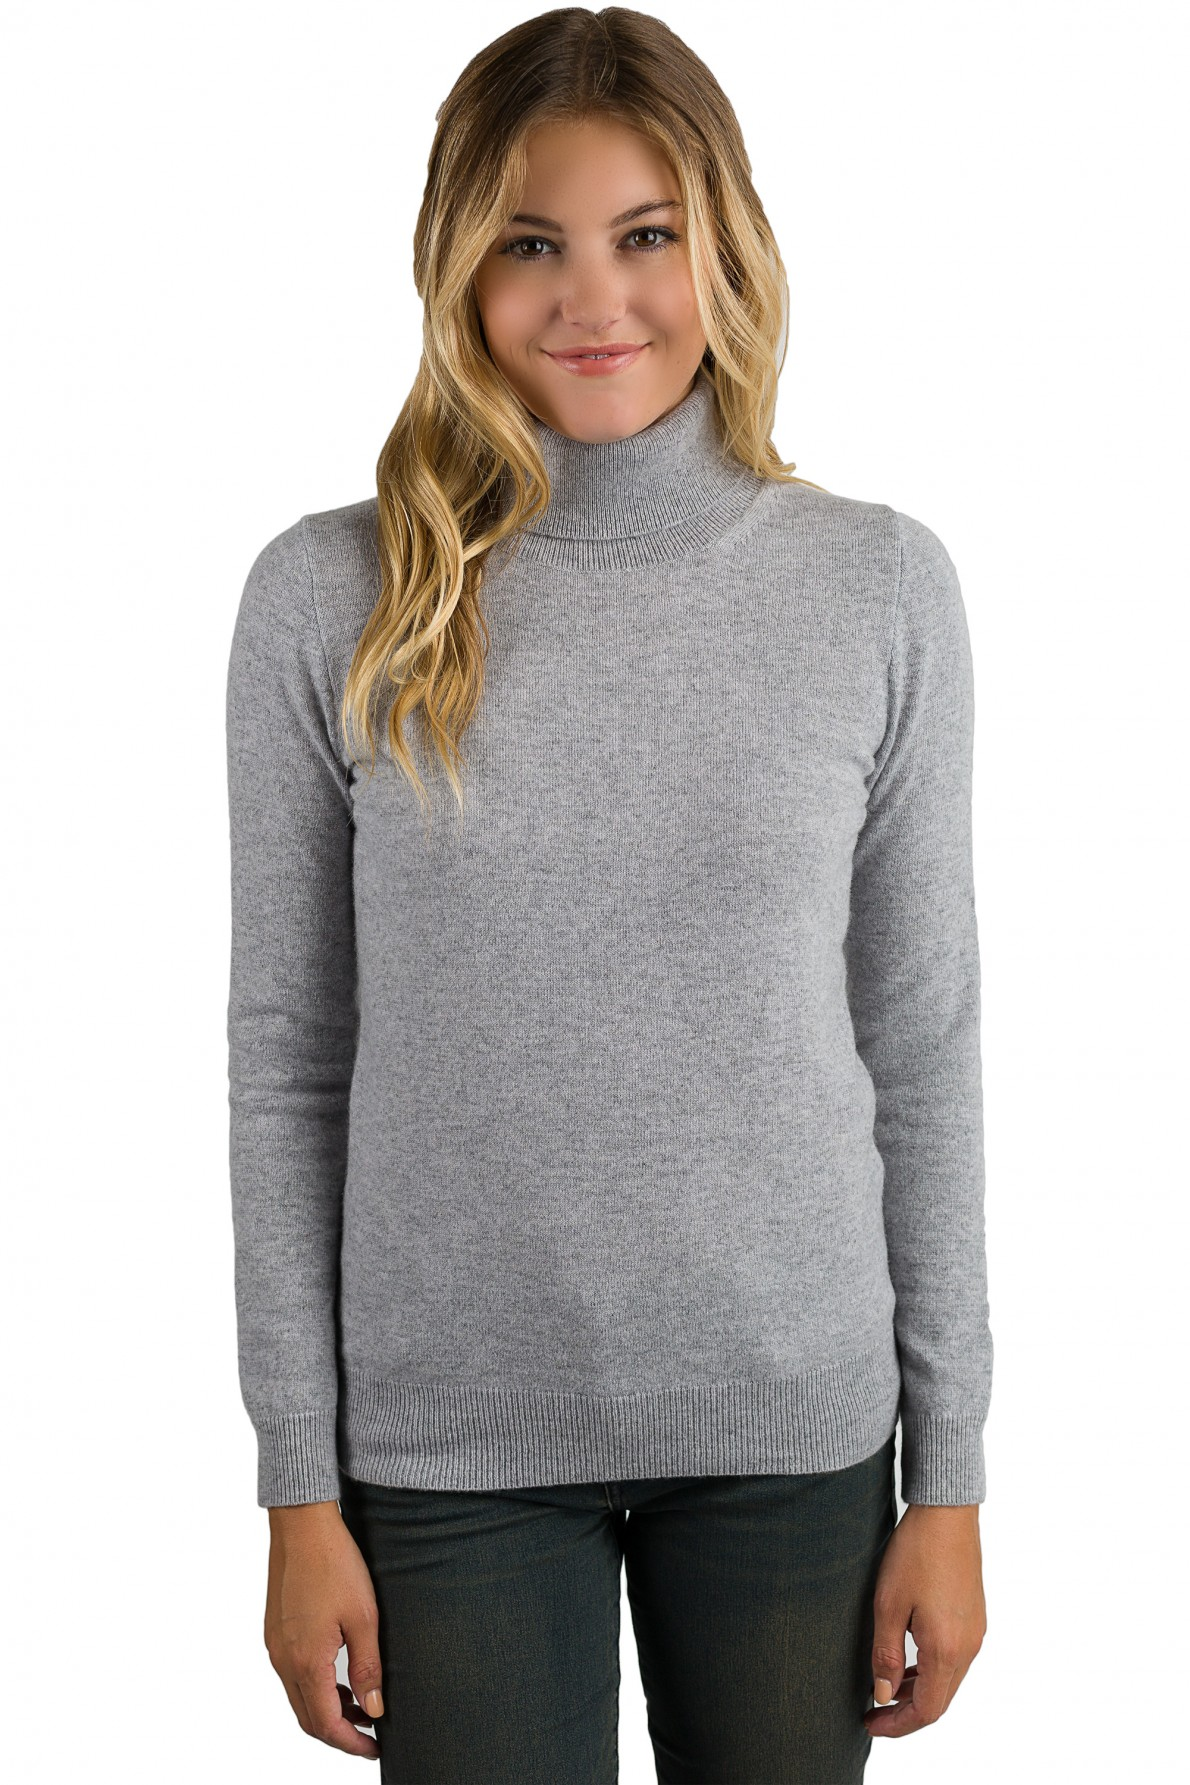 grey cashmere long sleeve turtleneck sweater front view ooqjhin